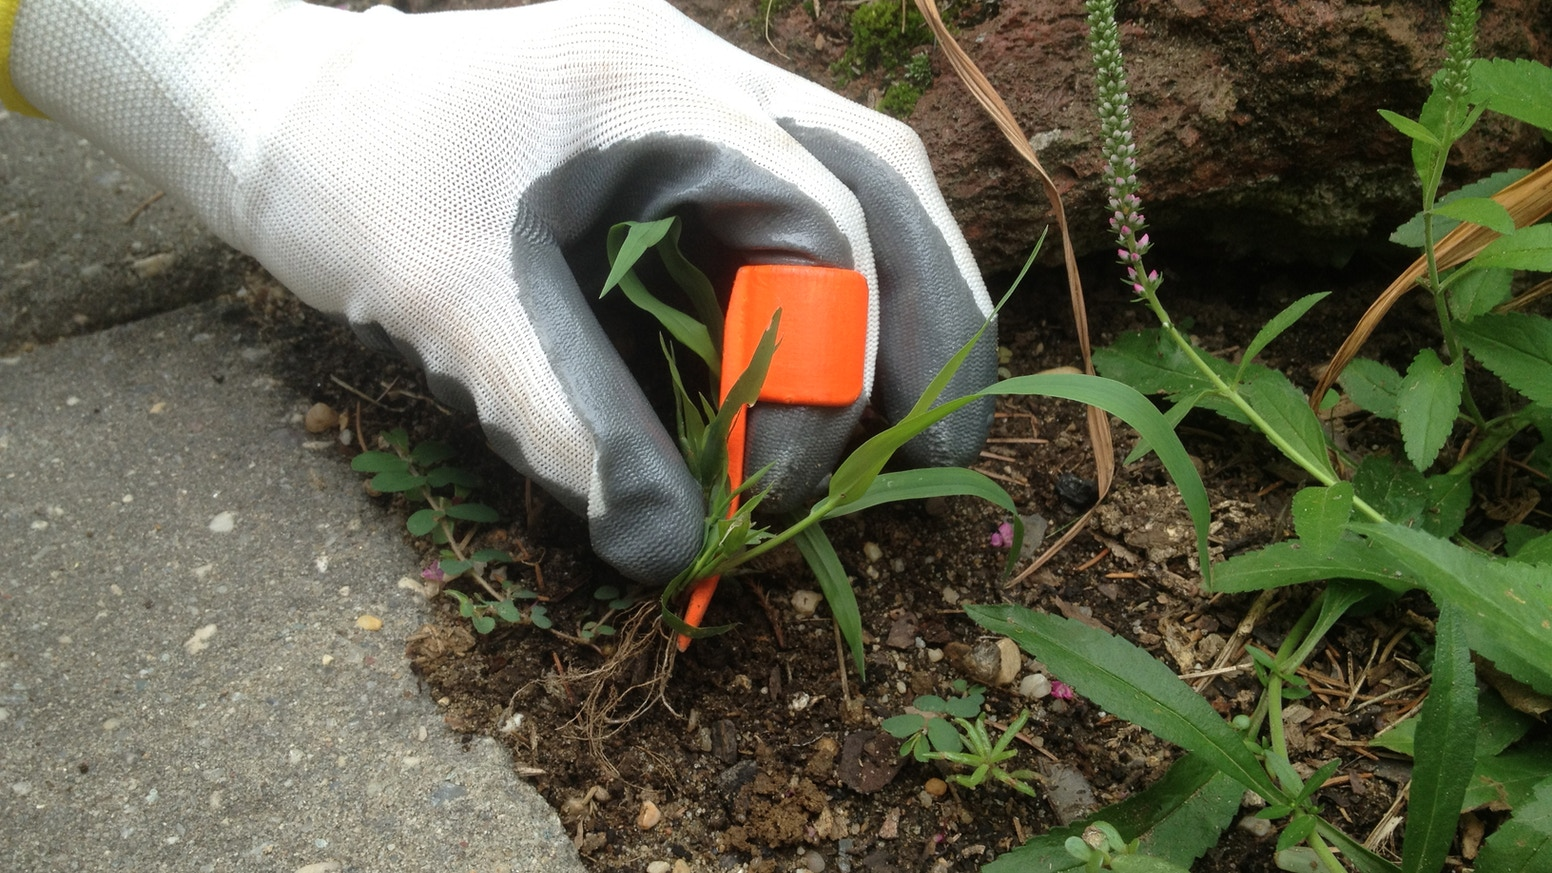 A garden tool that slips over your index finger that helps you weed those densely planted areas where larger tools won't fit.